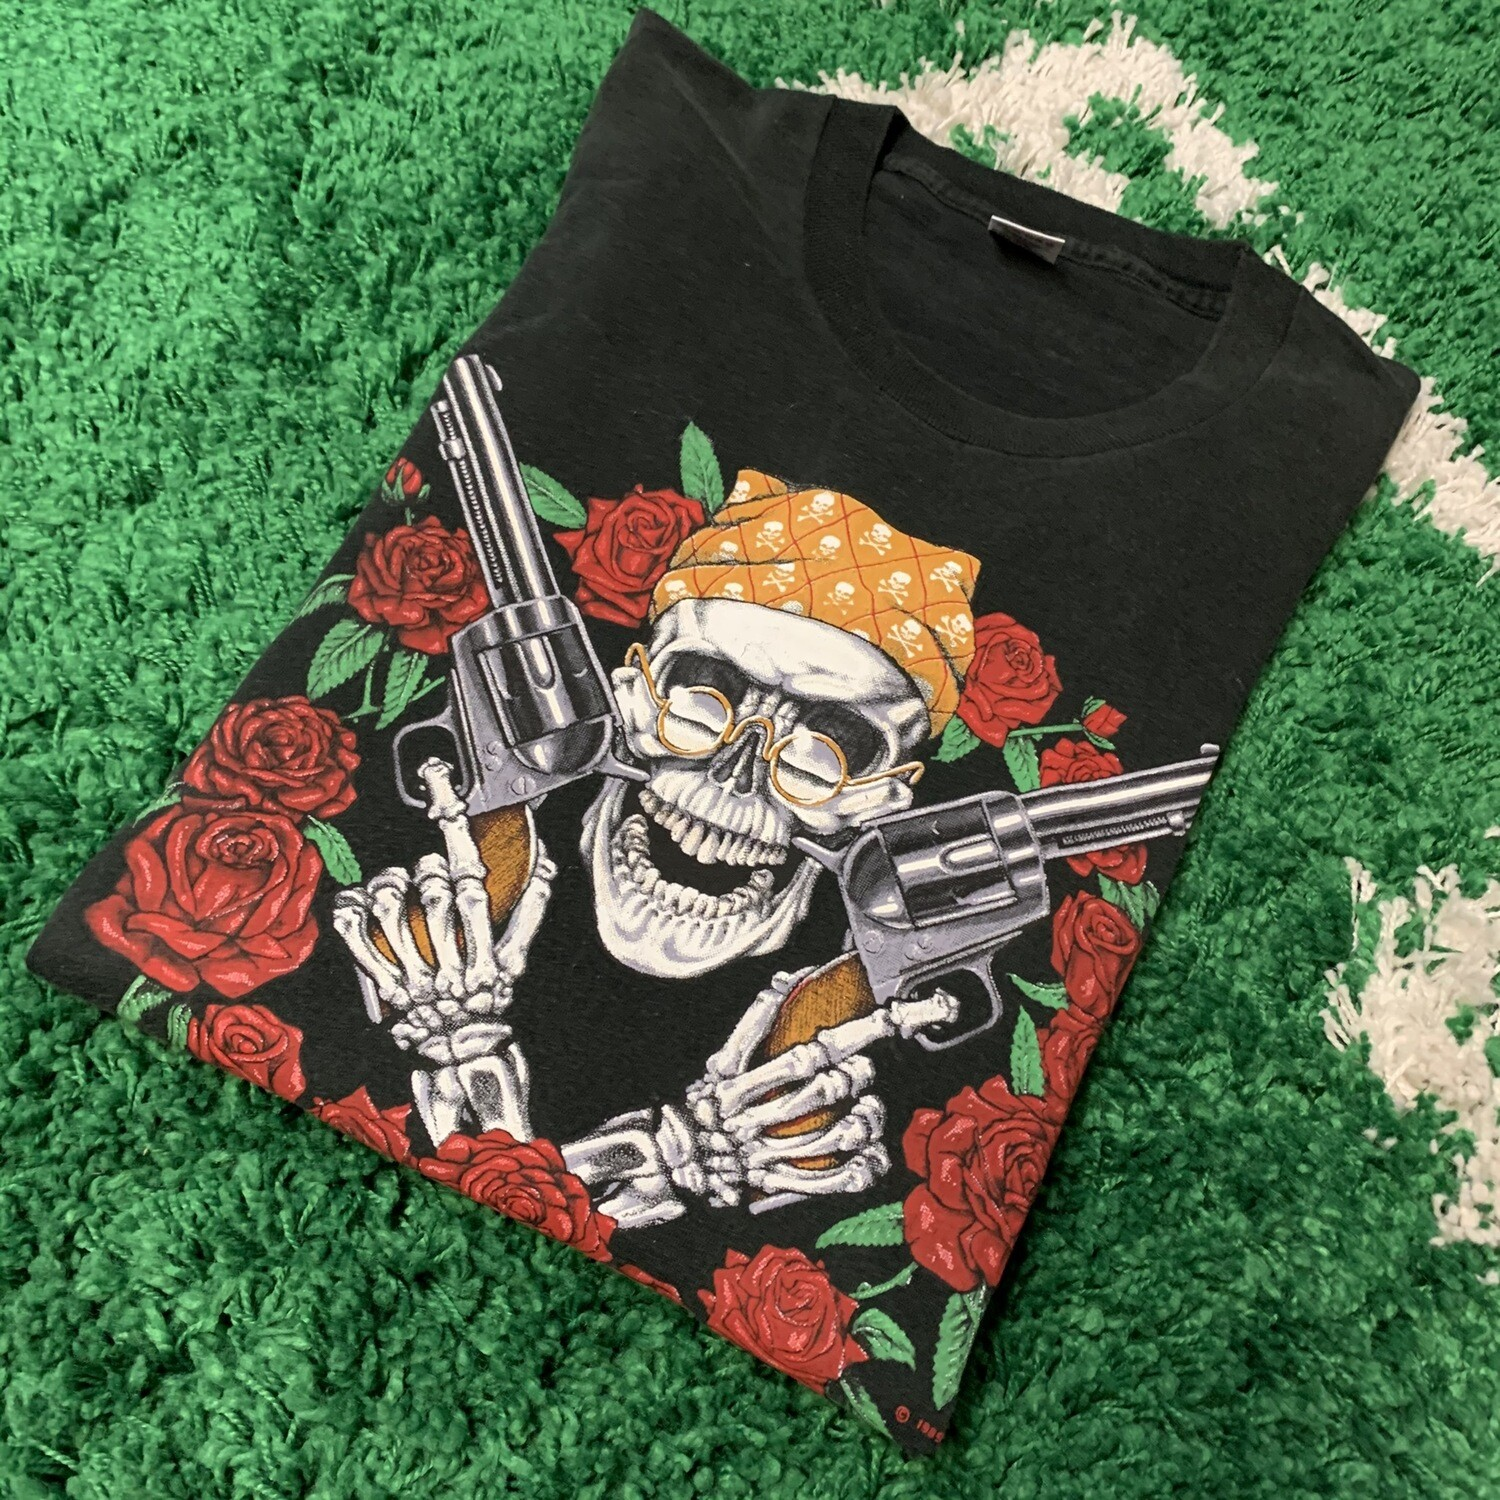 Skull with Gun's and Rose's 1989 Tee Size Large